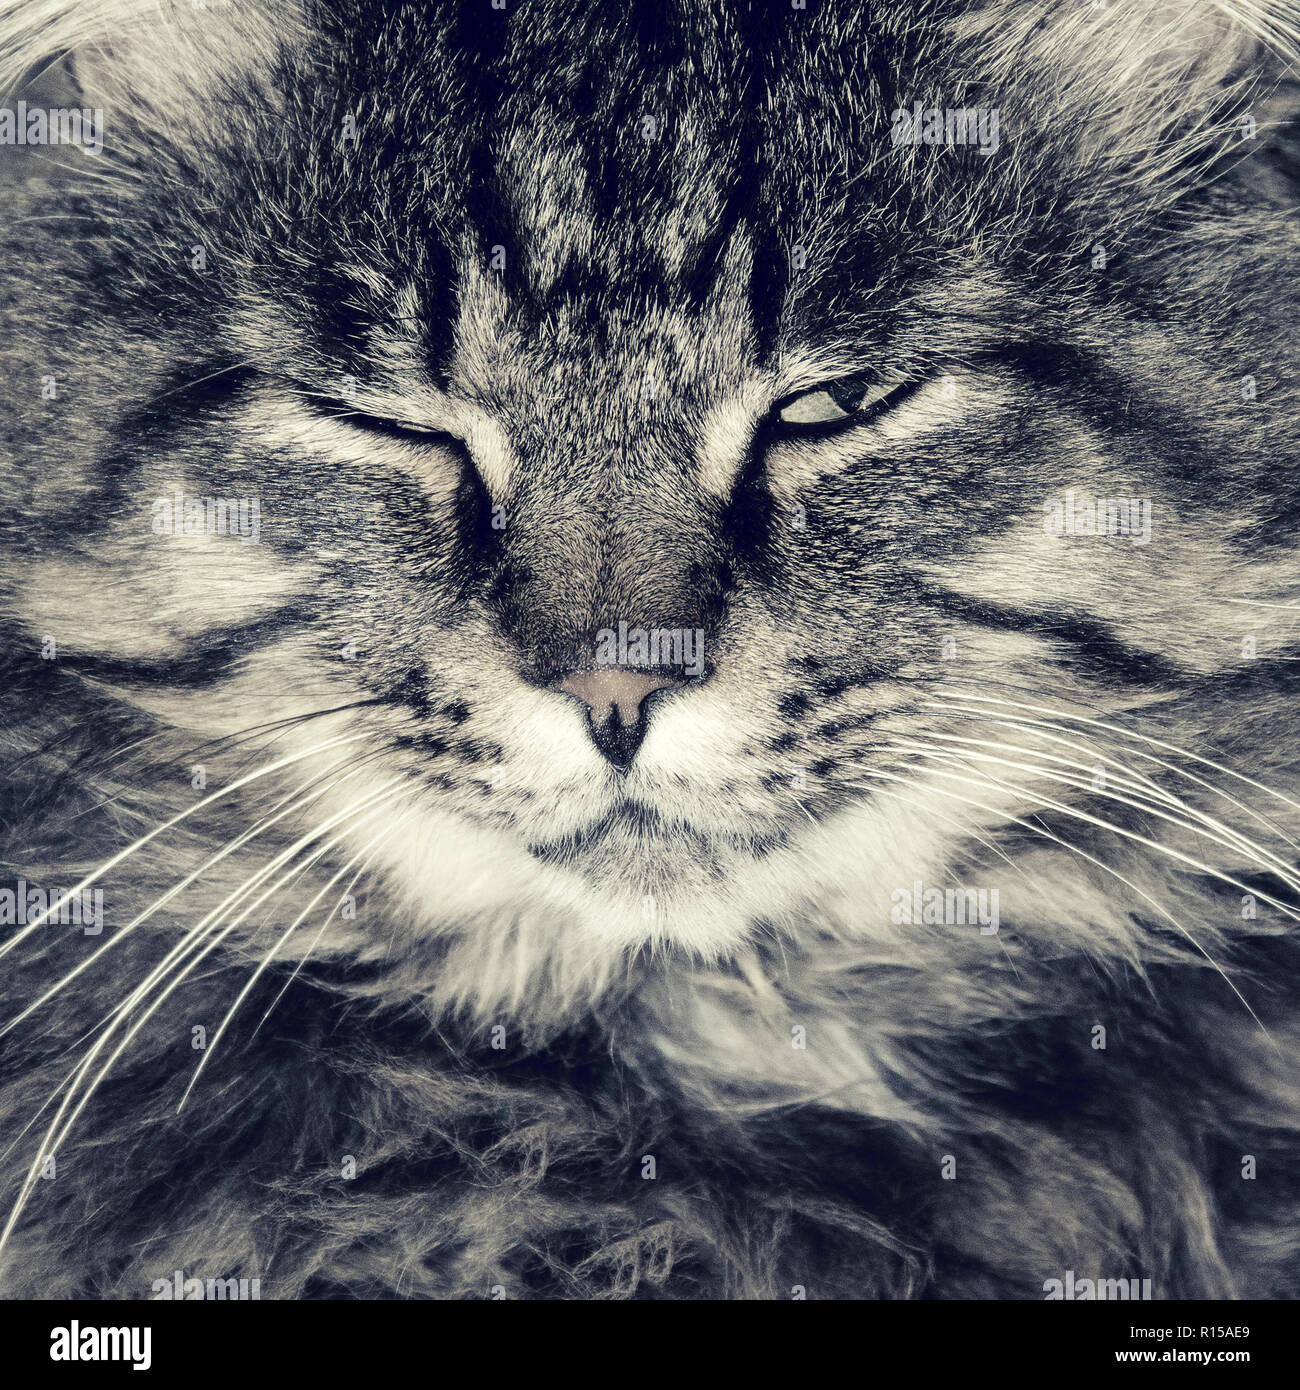 angry striped cat or kitten indoors. photo - Stock Image